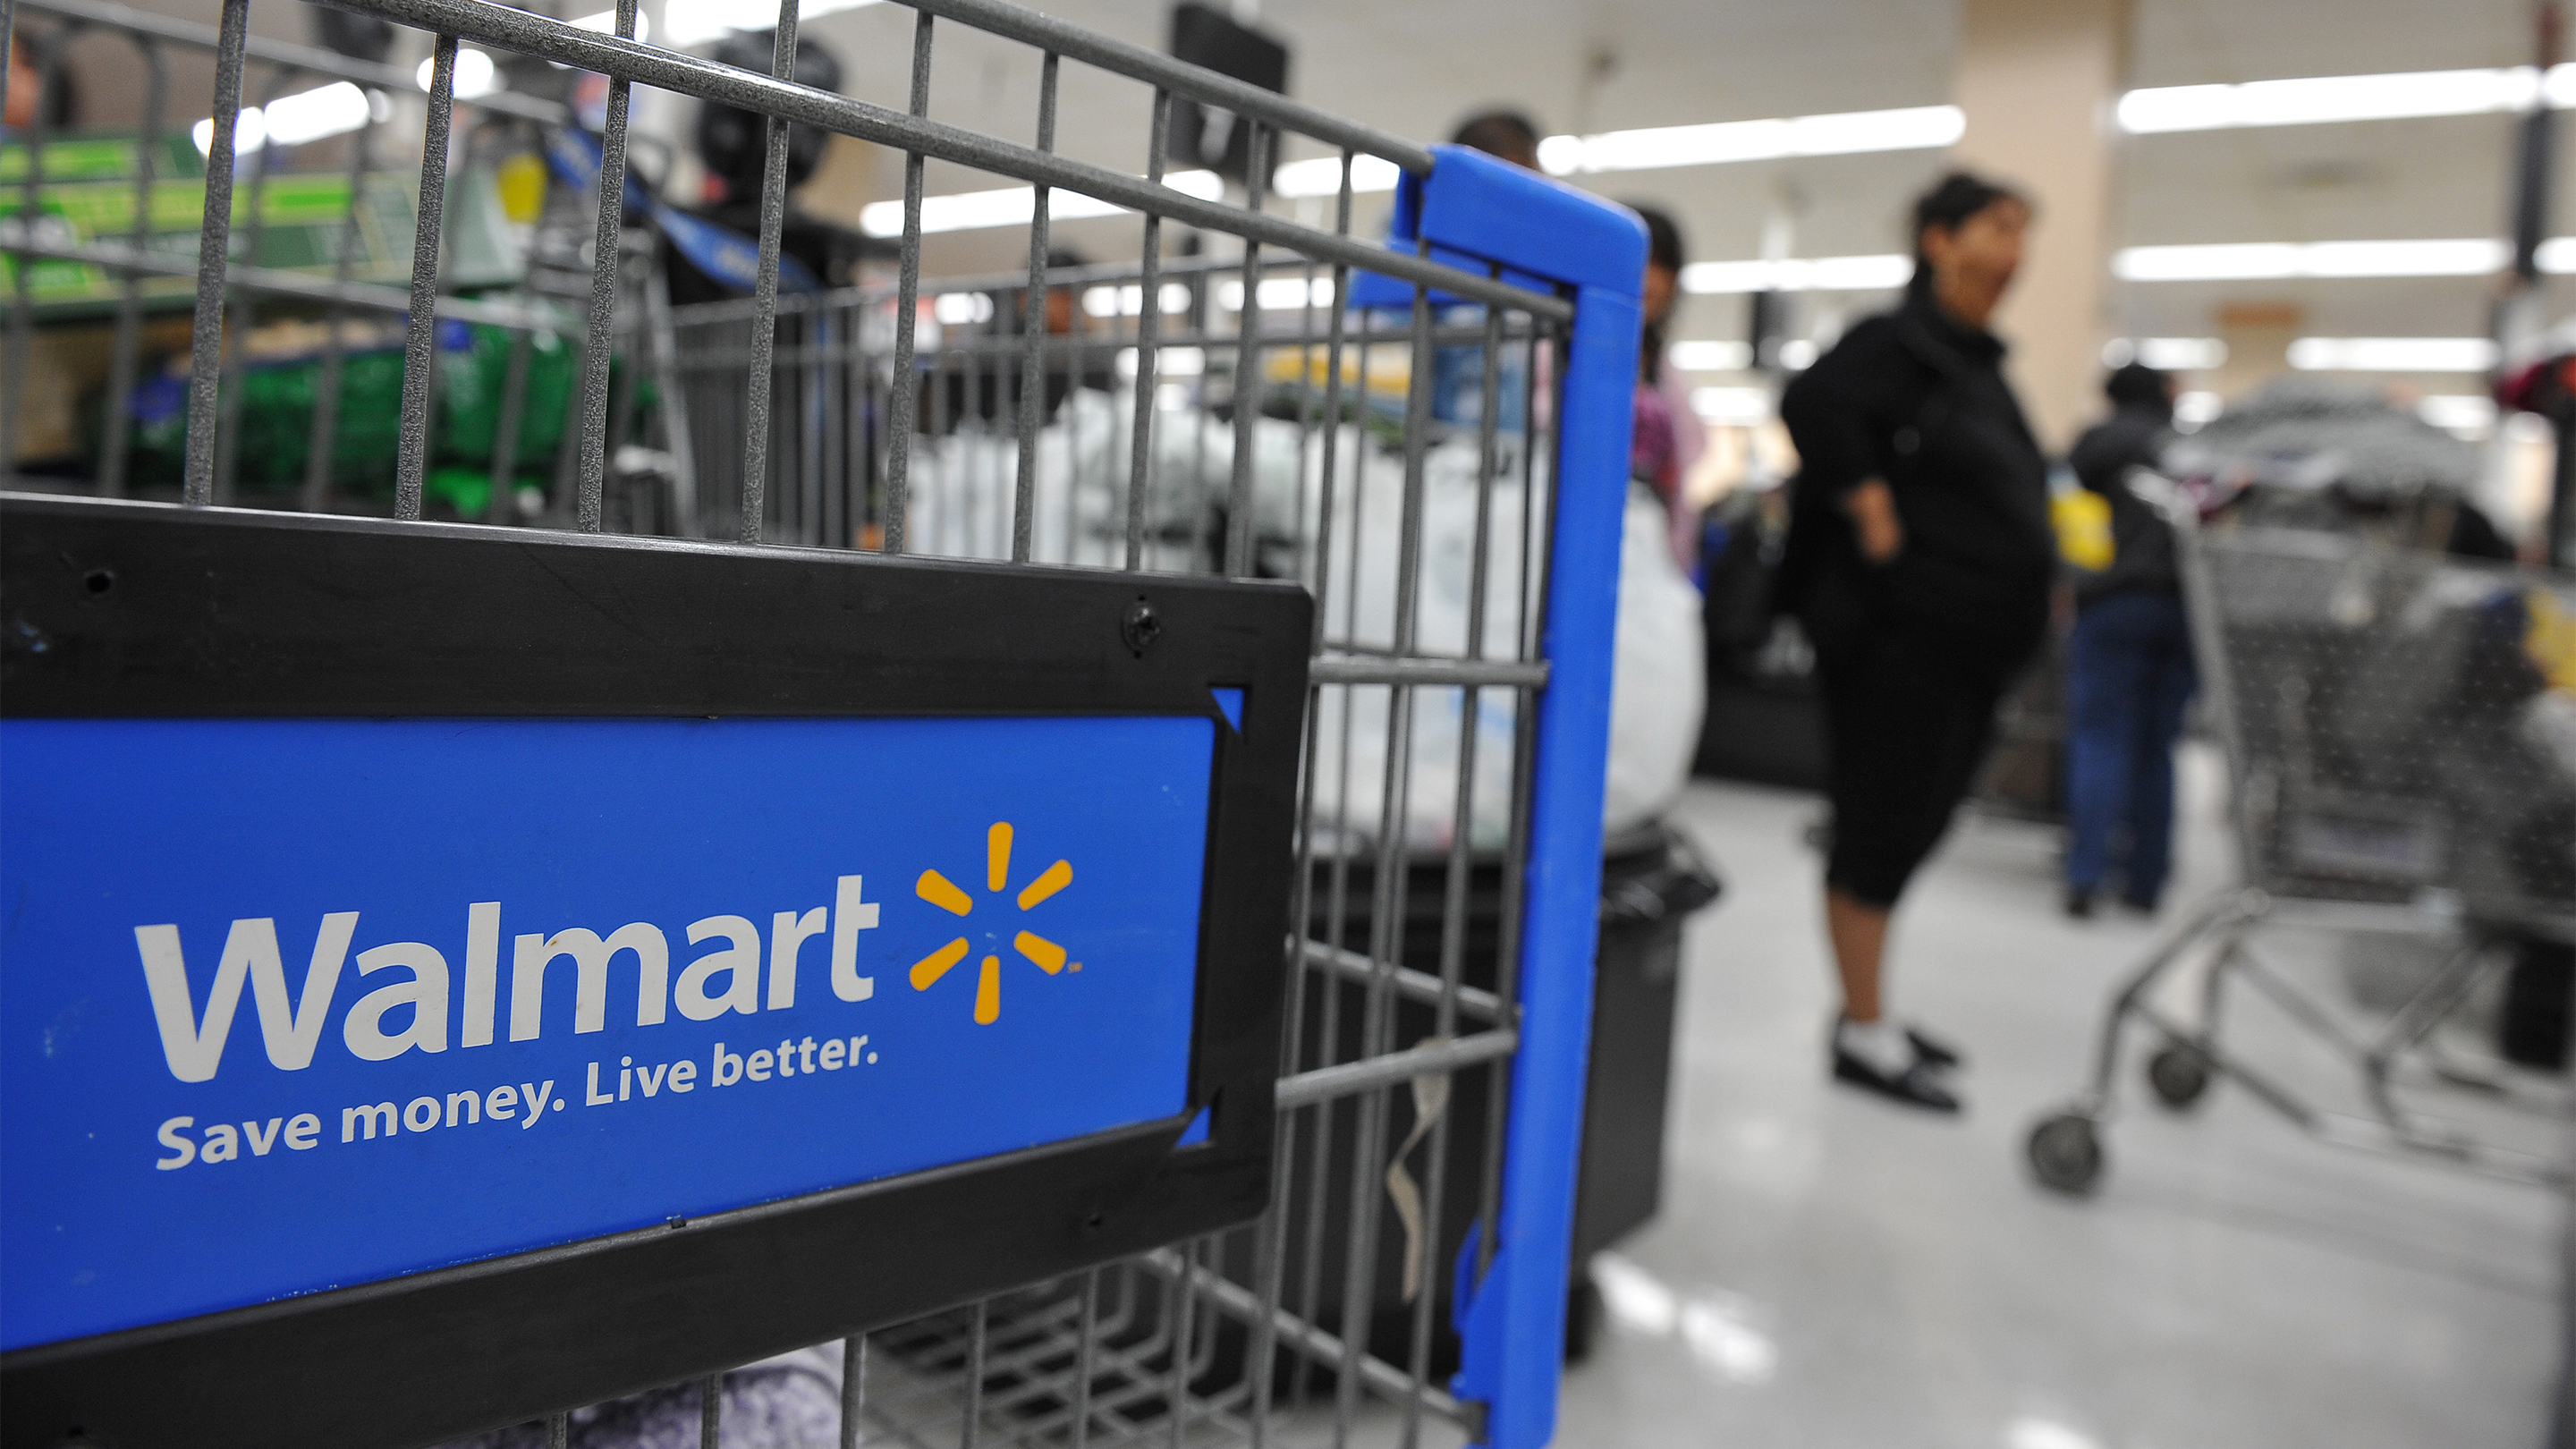 Tariff jump could mean higher prices at Walmart, but not immediately